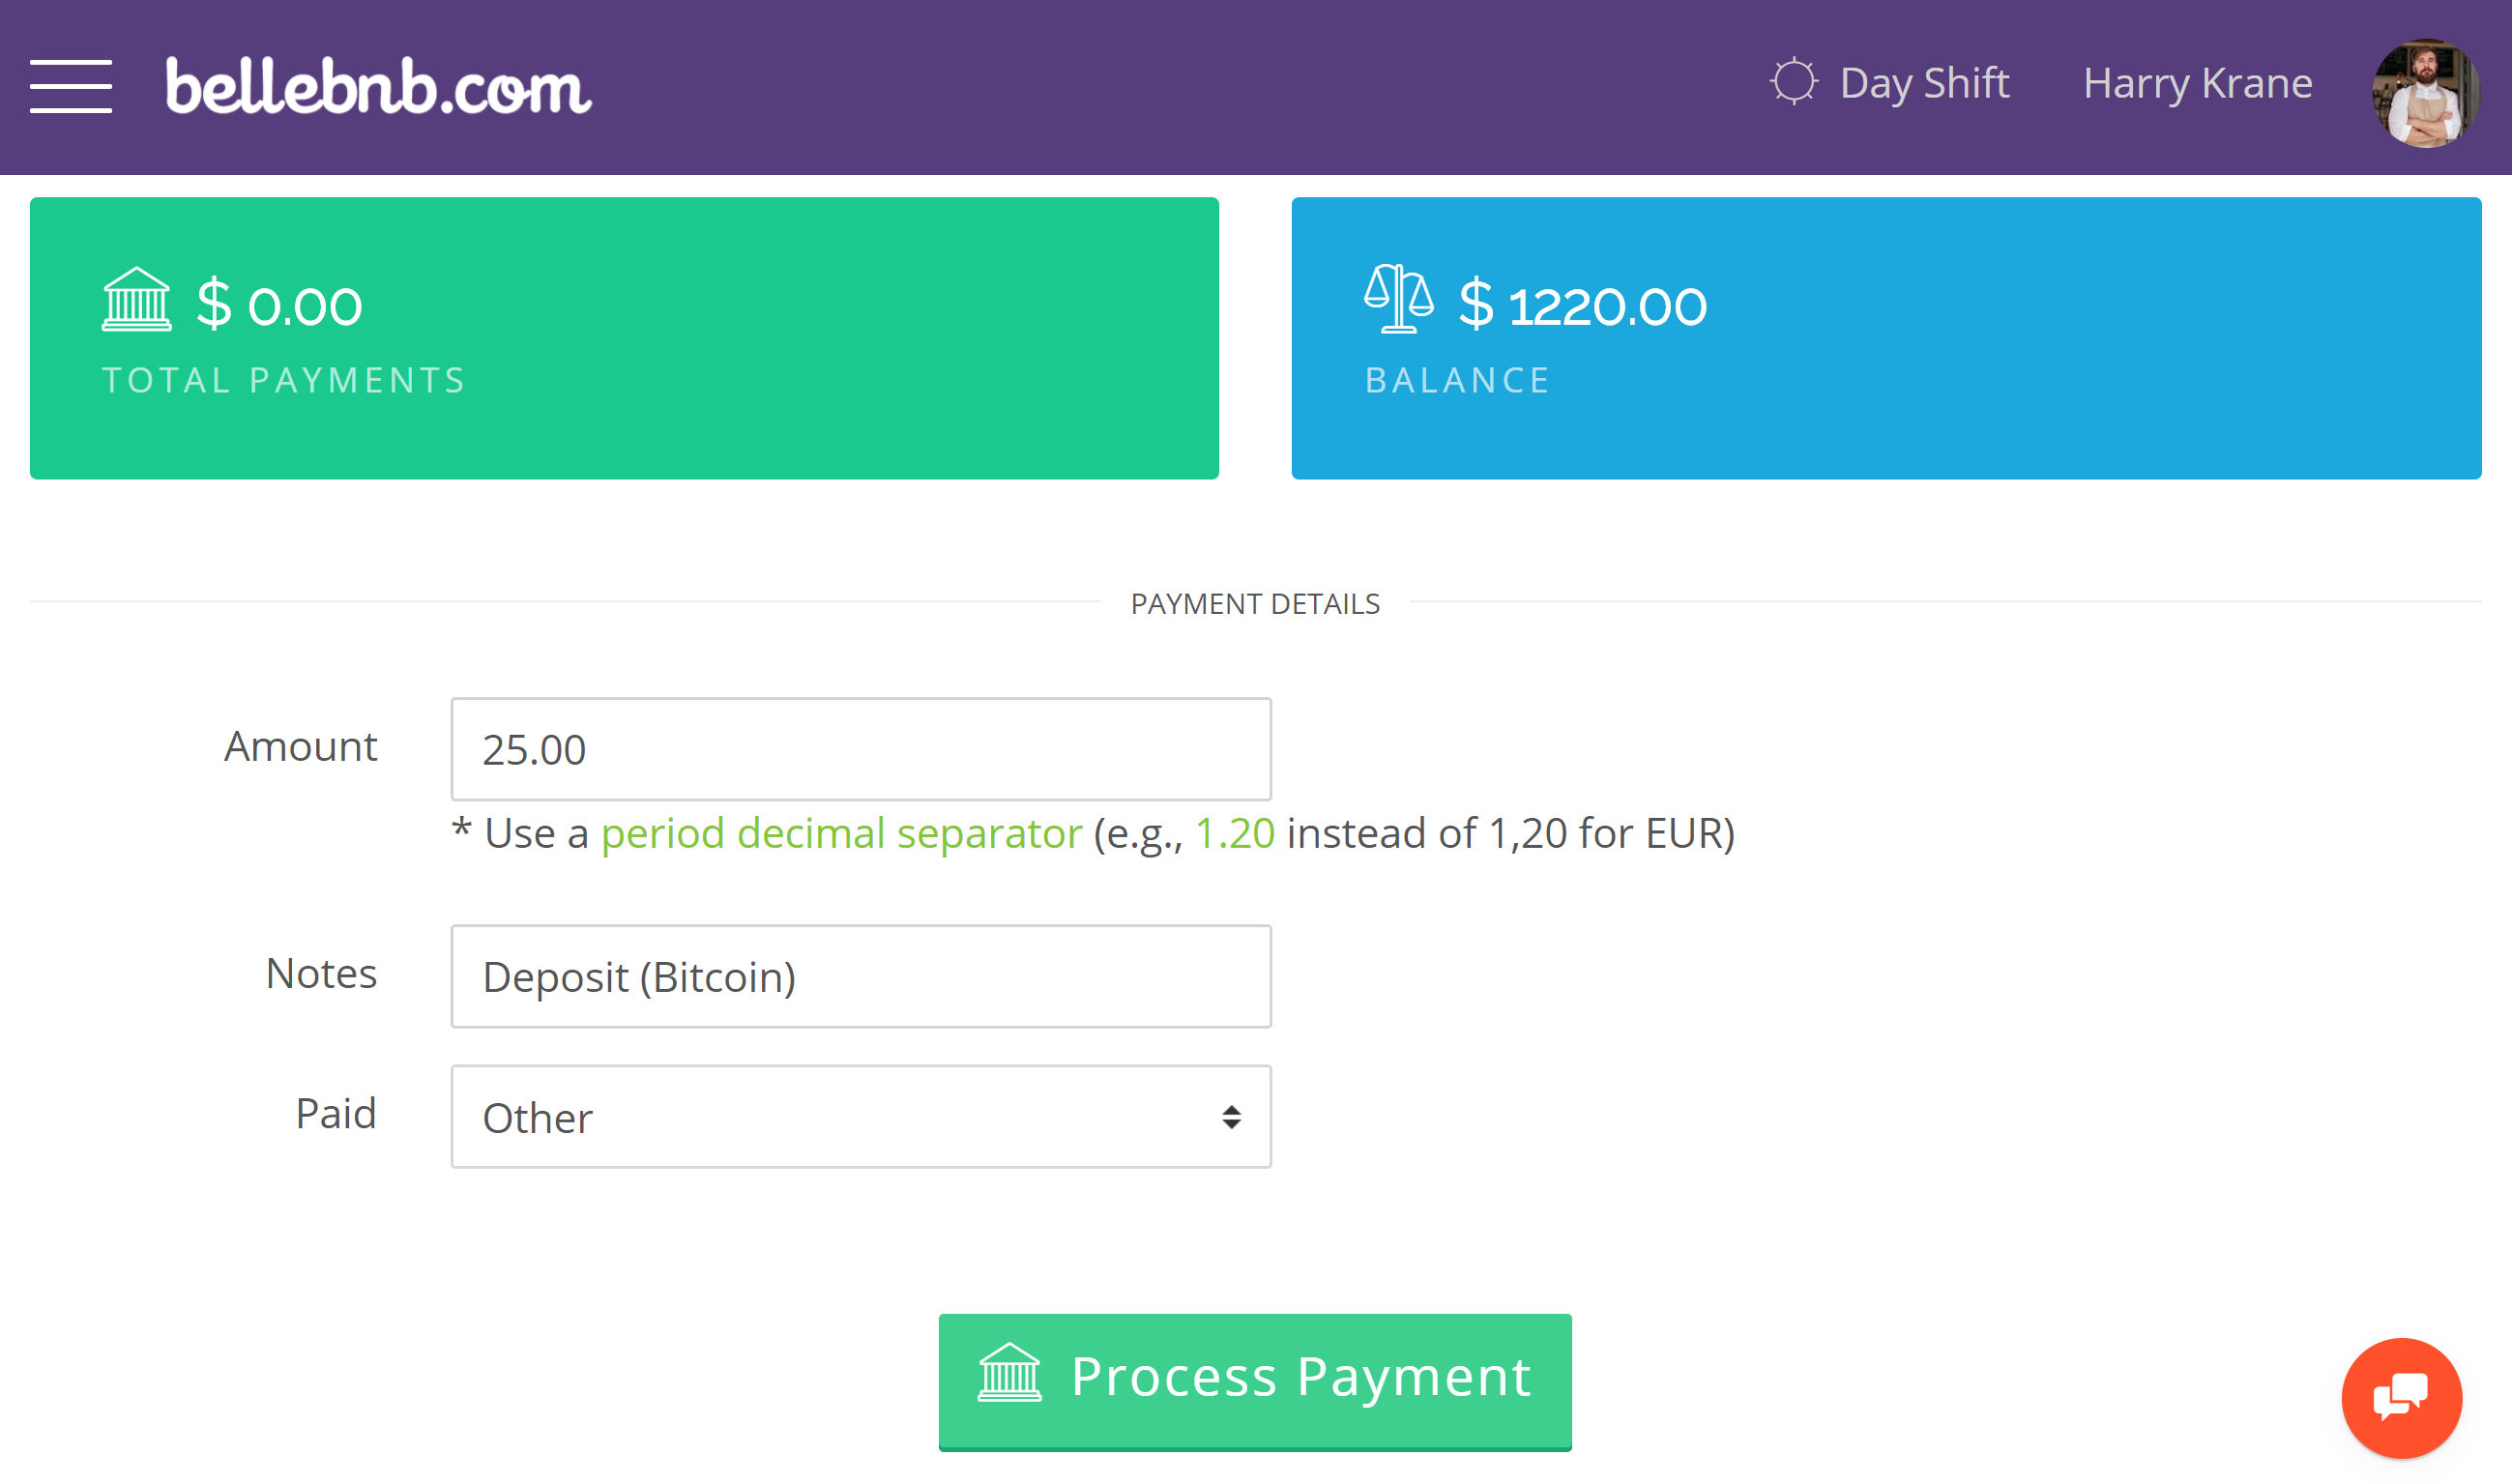 hotel Payments Workflow Payment Gateways Part I: Bellebnb Concepts You can connect your Payment Gateway to process live credit card payments directly from your Front Desk manager. Before you do this, you should be familiar with a few definitions and concepts found in this blog post. Hotel Management Software in the Cloud